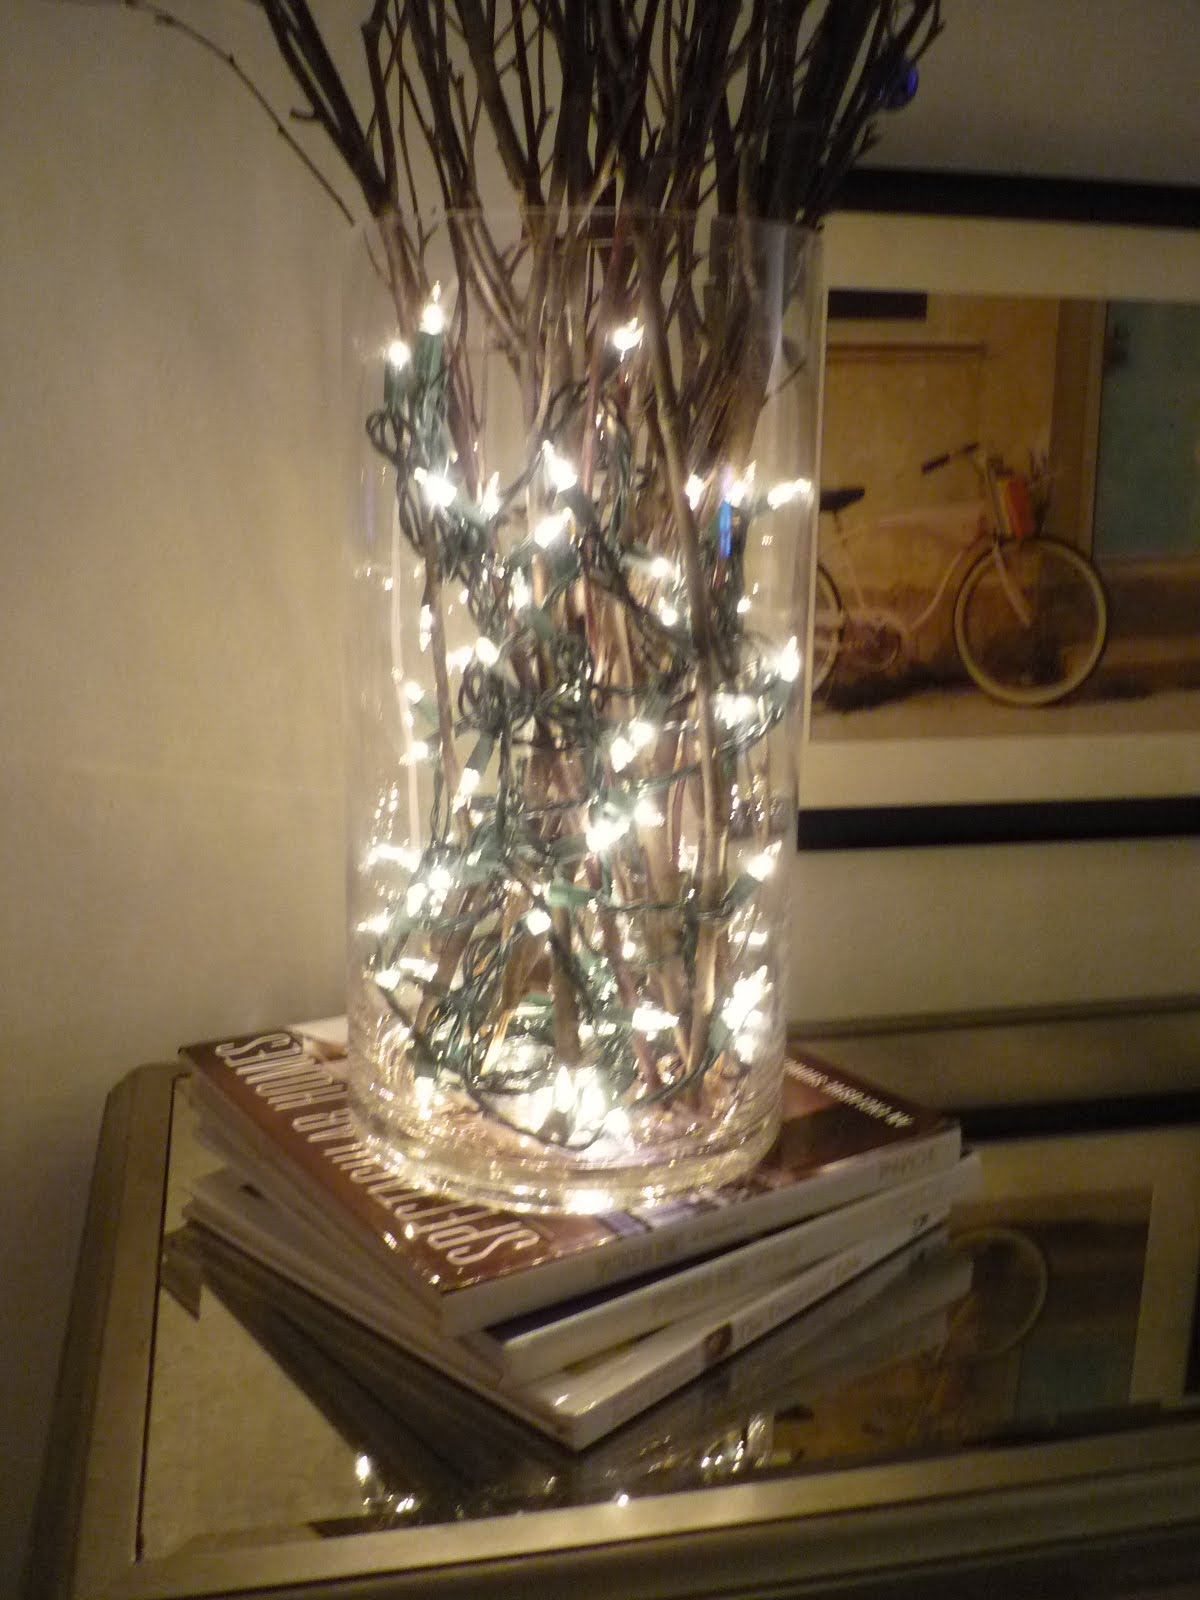 Non traditional christmas tree ideas - I Did A Quick Search For Other Non Traditional And Wildly Creative Trees Check Out Some Fun Ideas Below